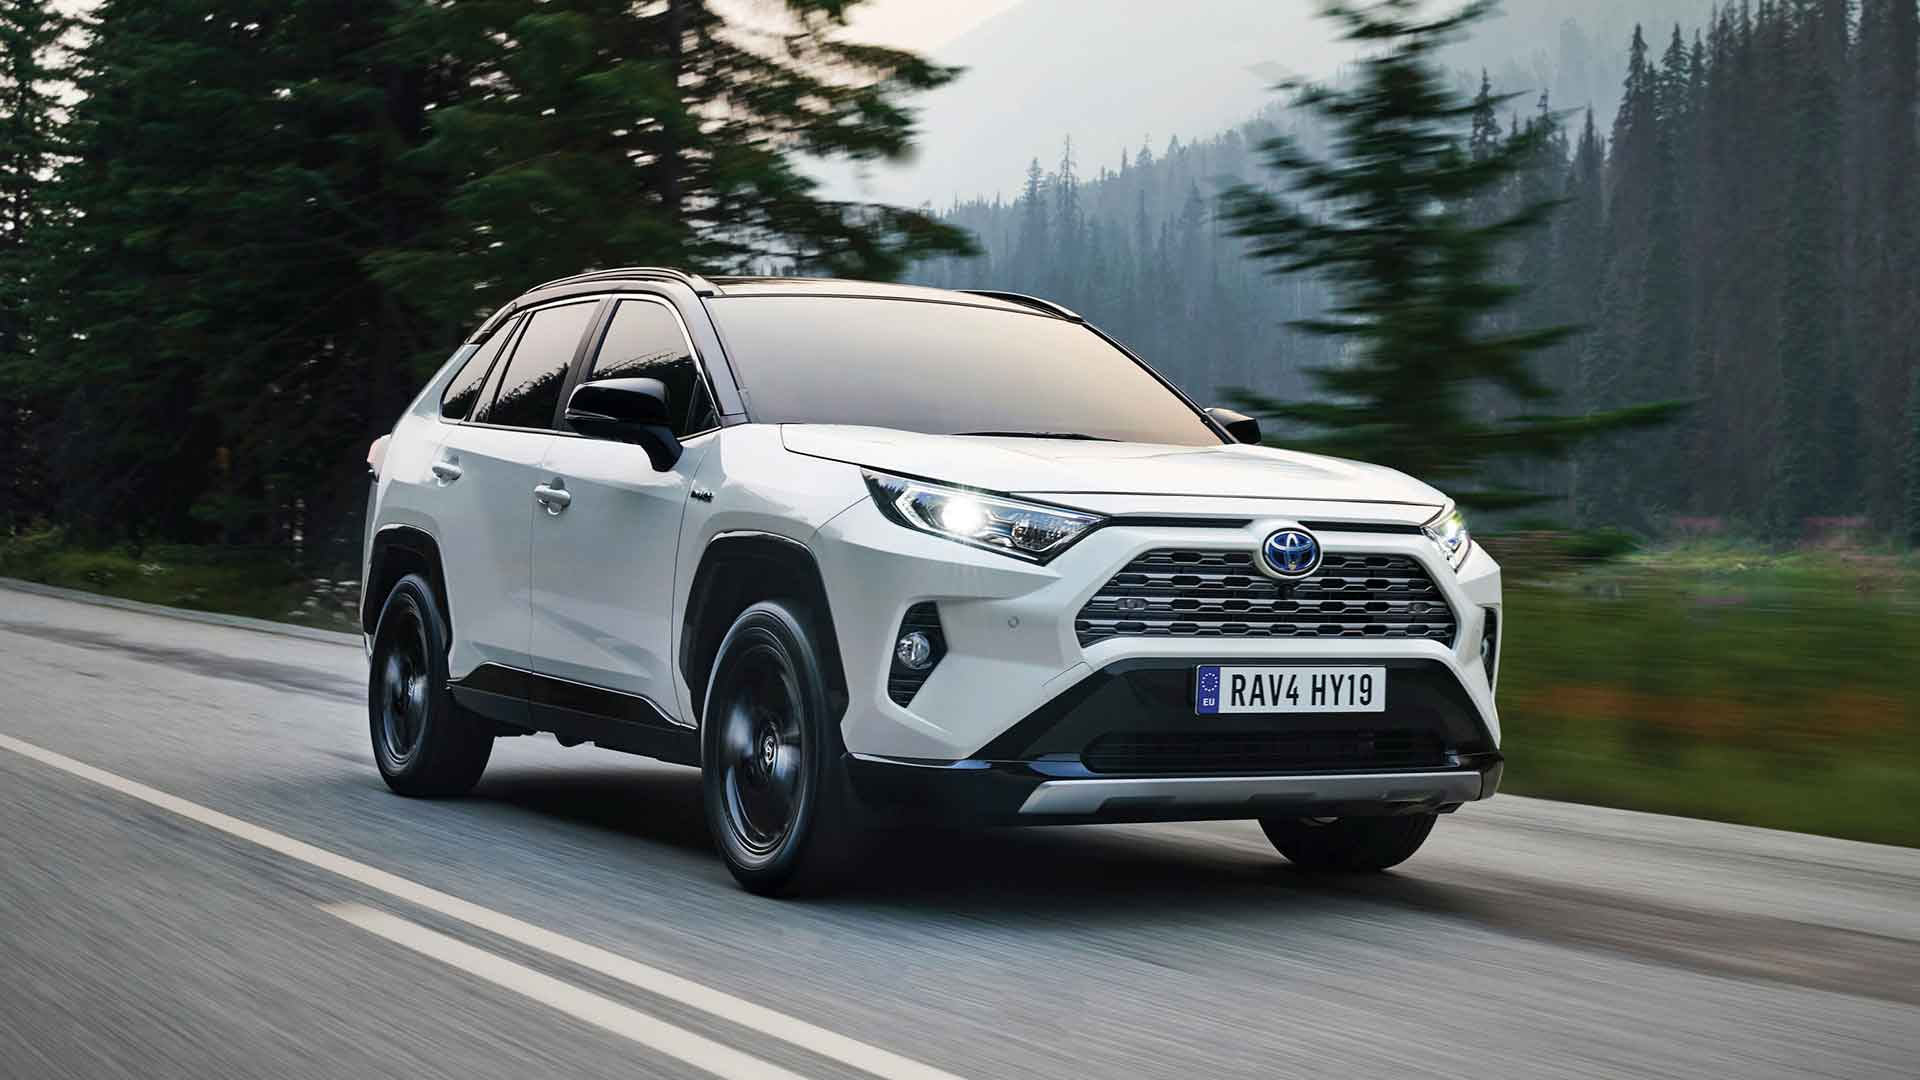 2019 Toyota Rav4 Review A Return To Its Rugged Suv Roots